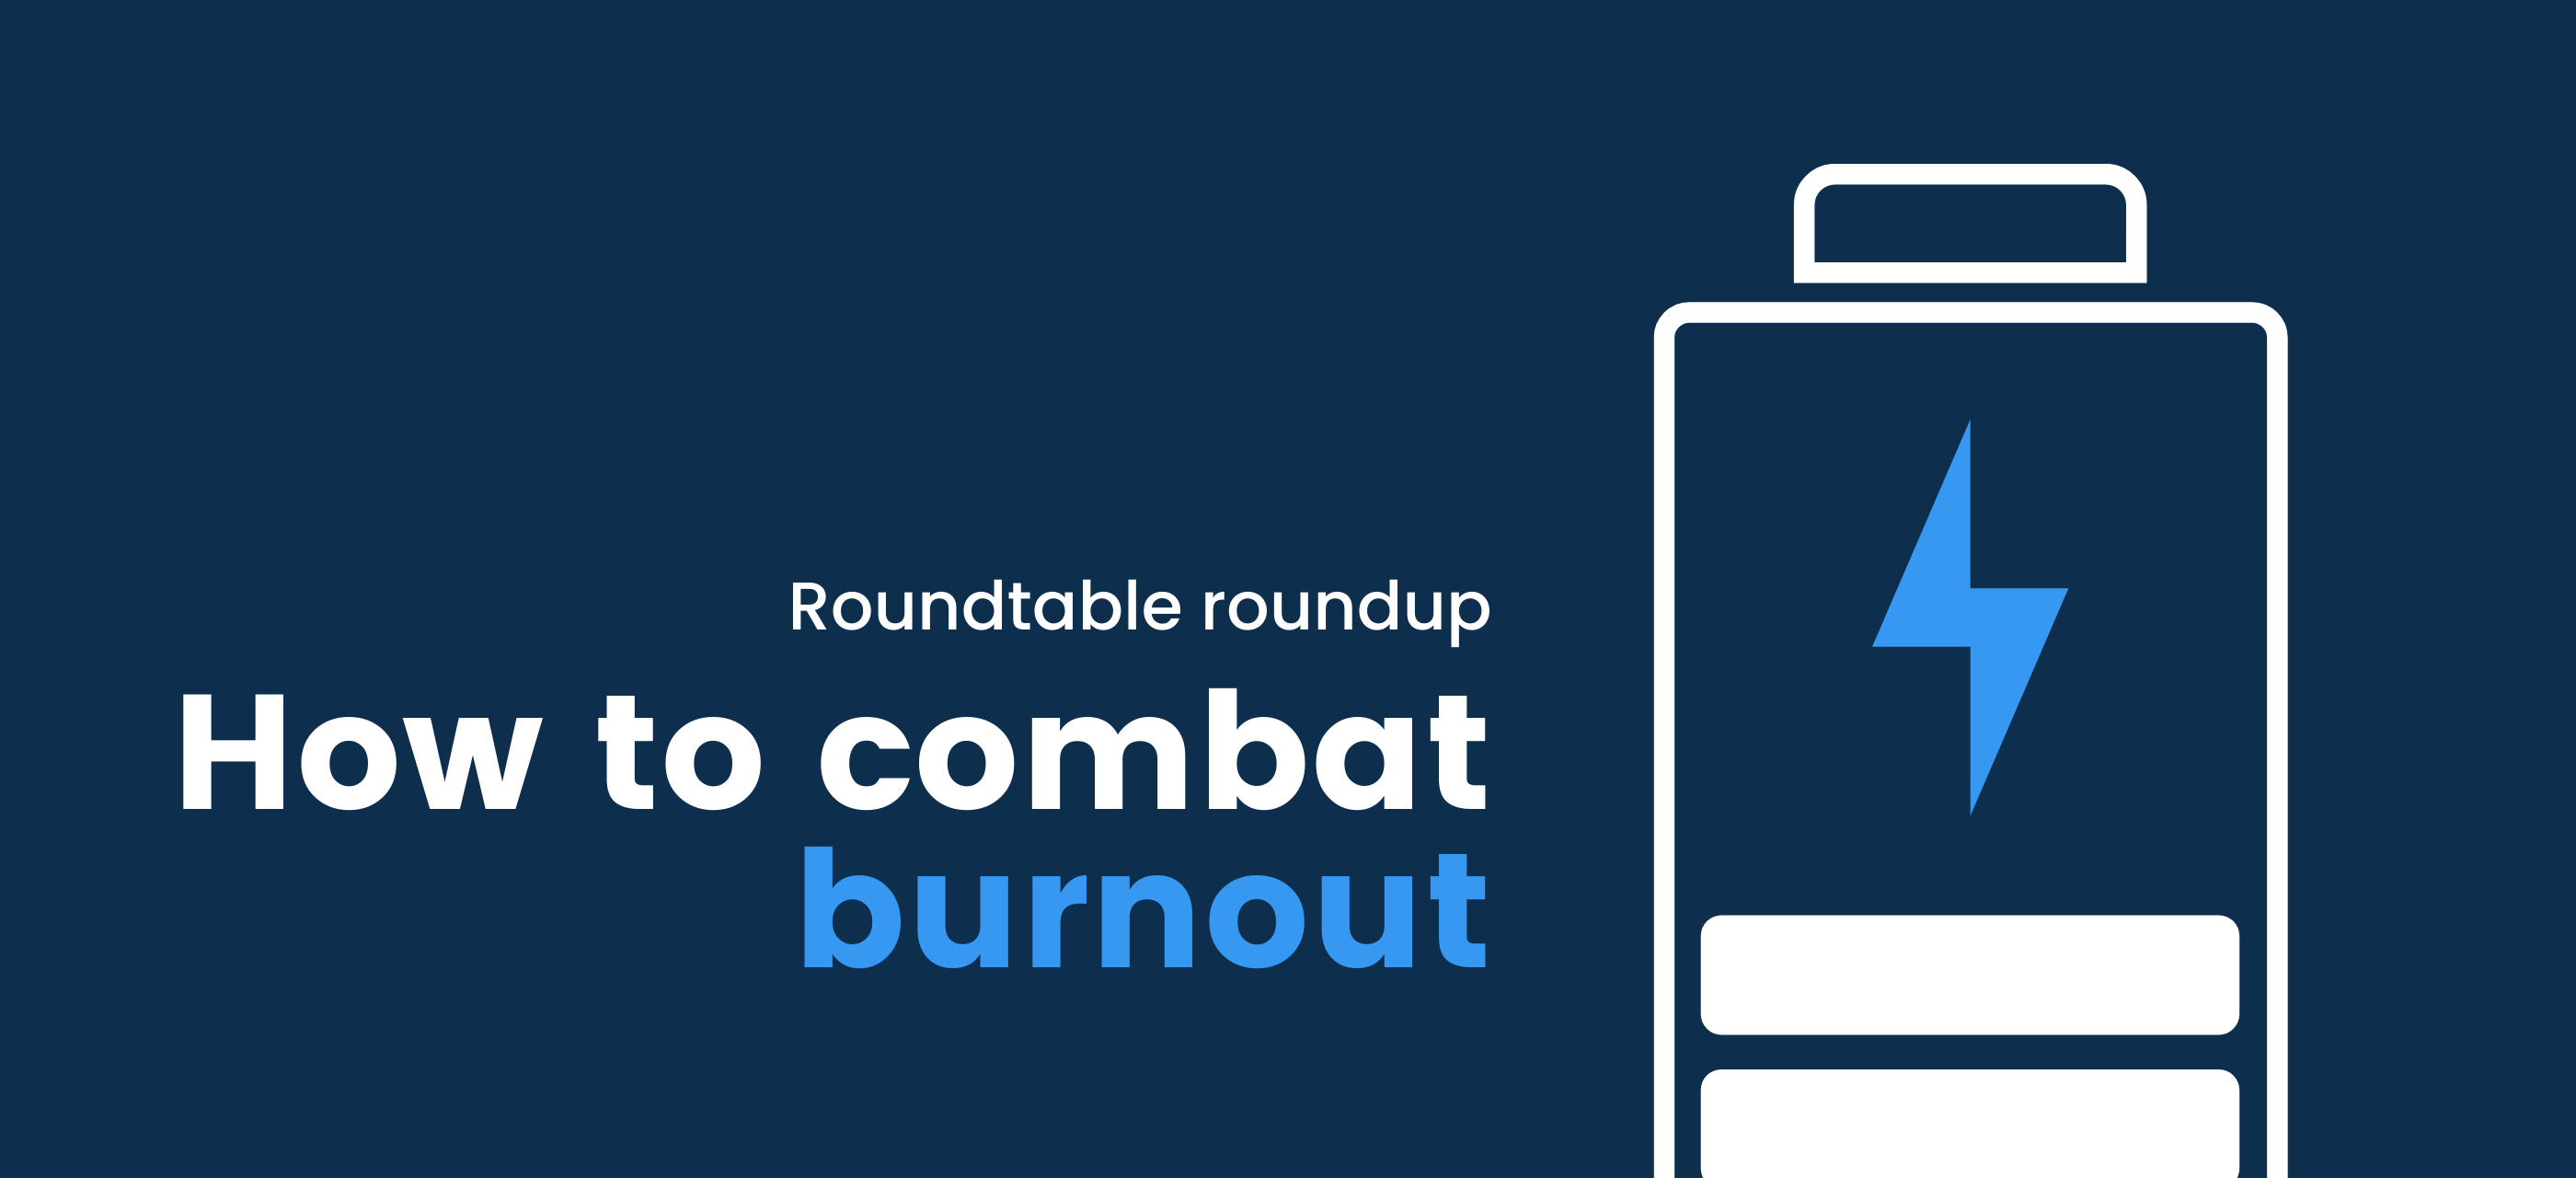 Roundtable roundup 2: how to combat burnout